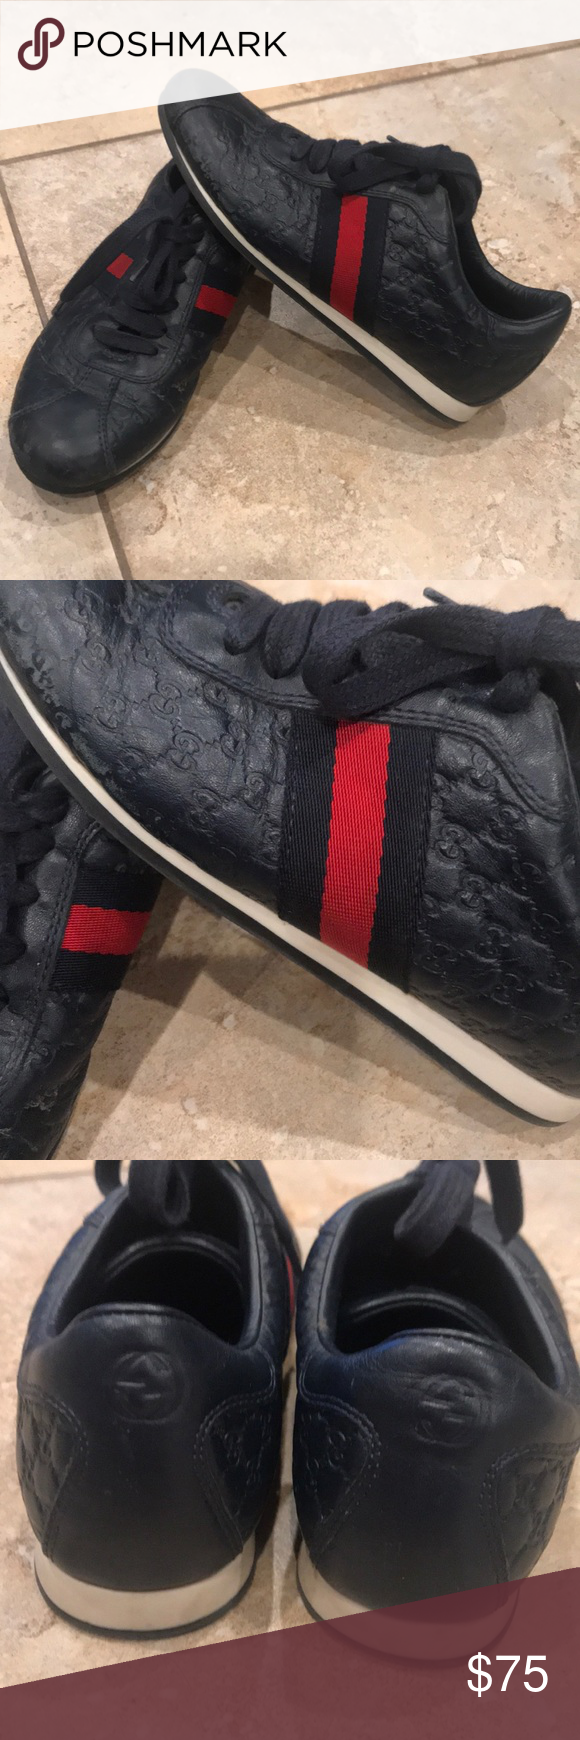 Gucci Logo kids shoe size 31 Italy is